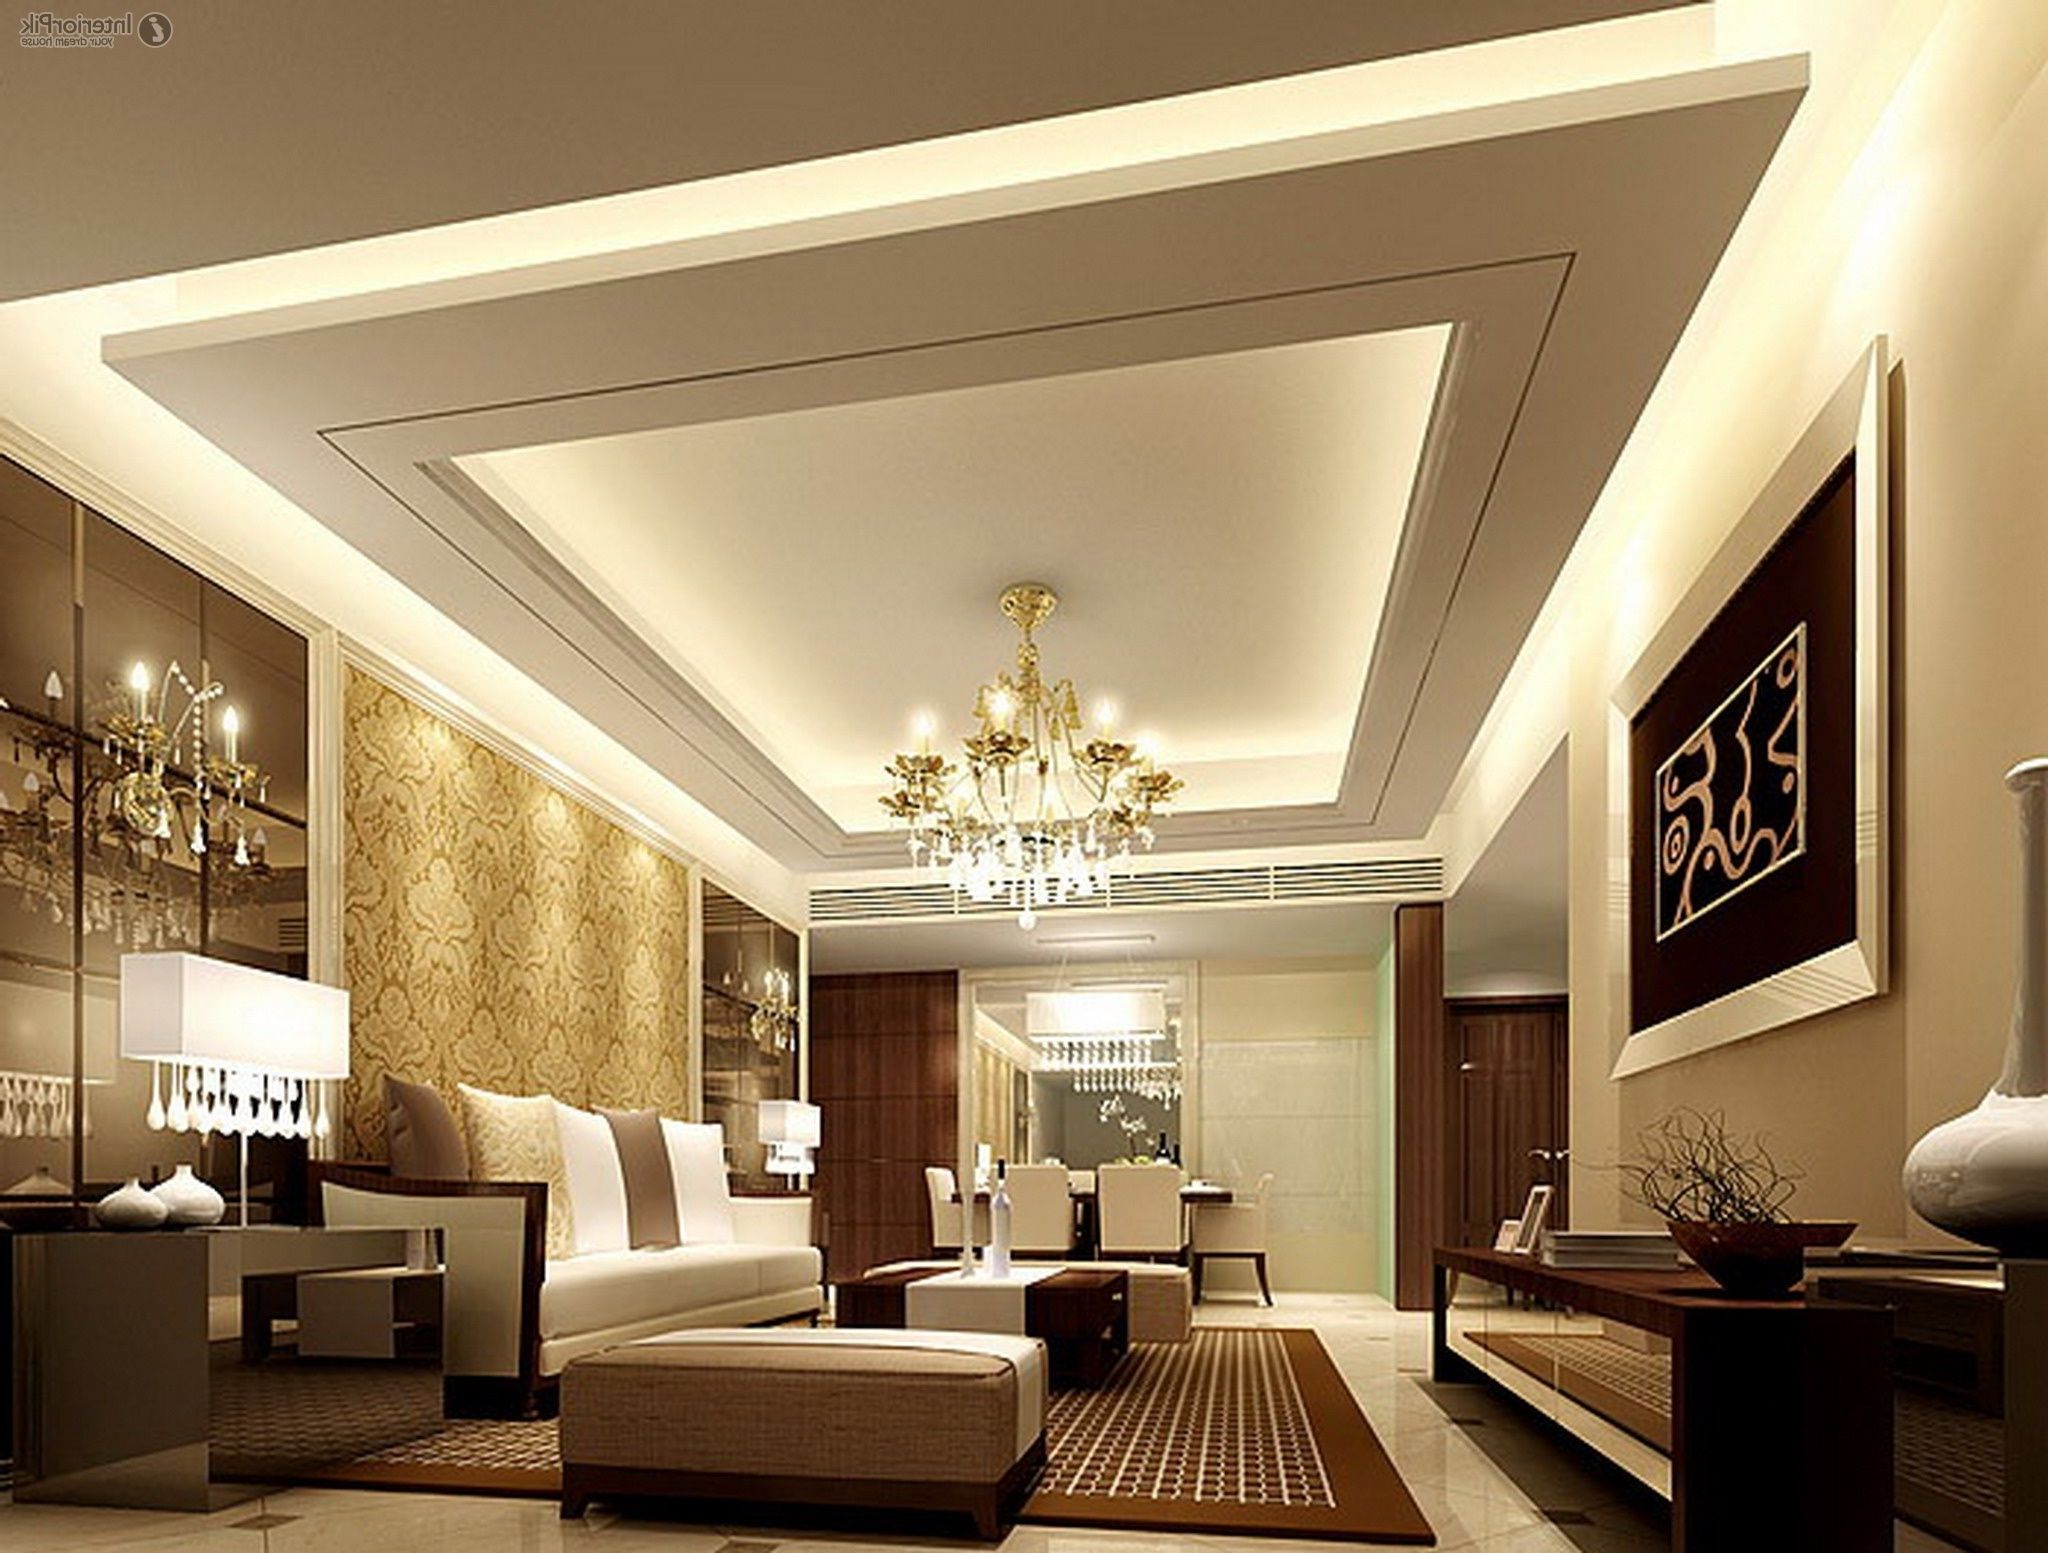 Amazing Gypsum Ceiling Design For Living Room Lighting Home Decorate Best Living  Room Ceiling Design